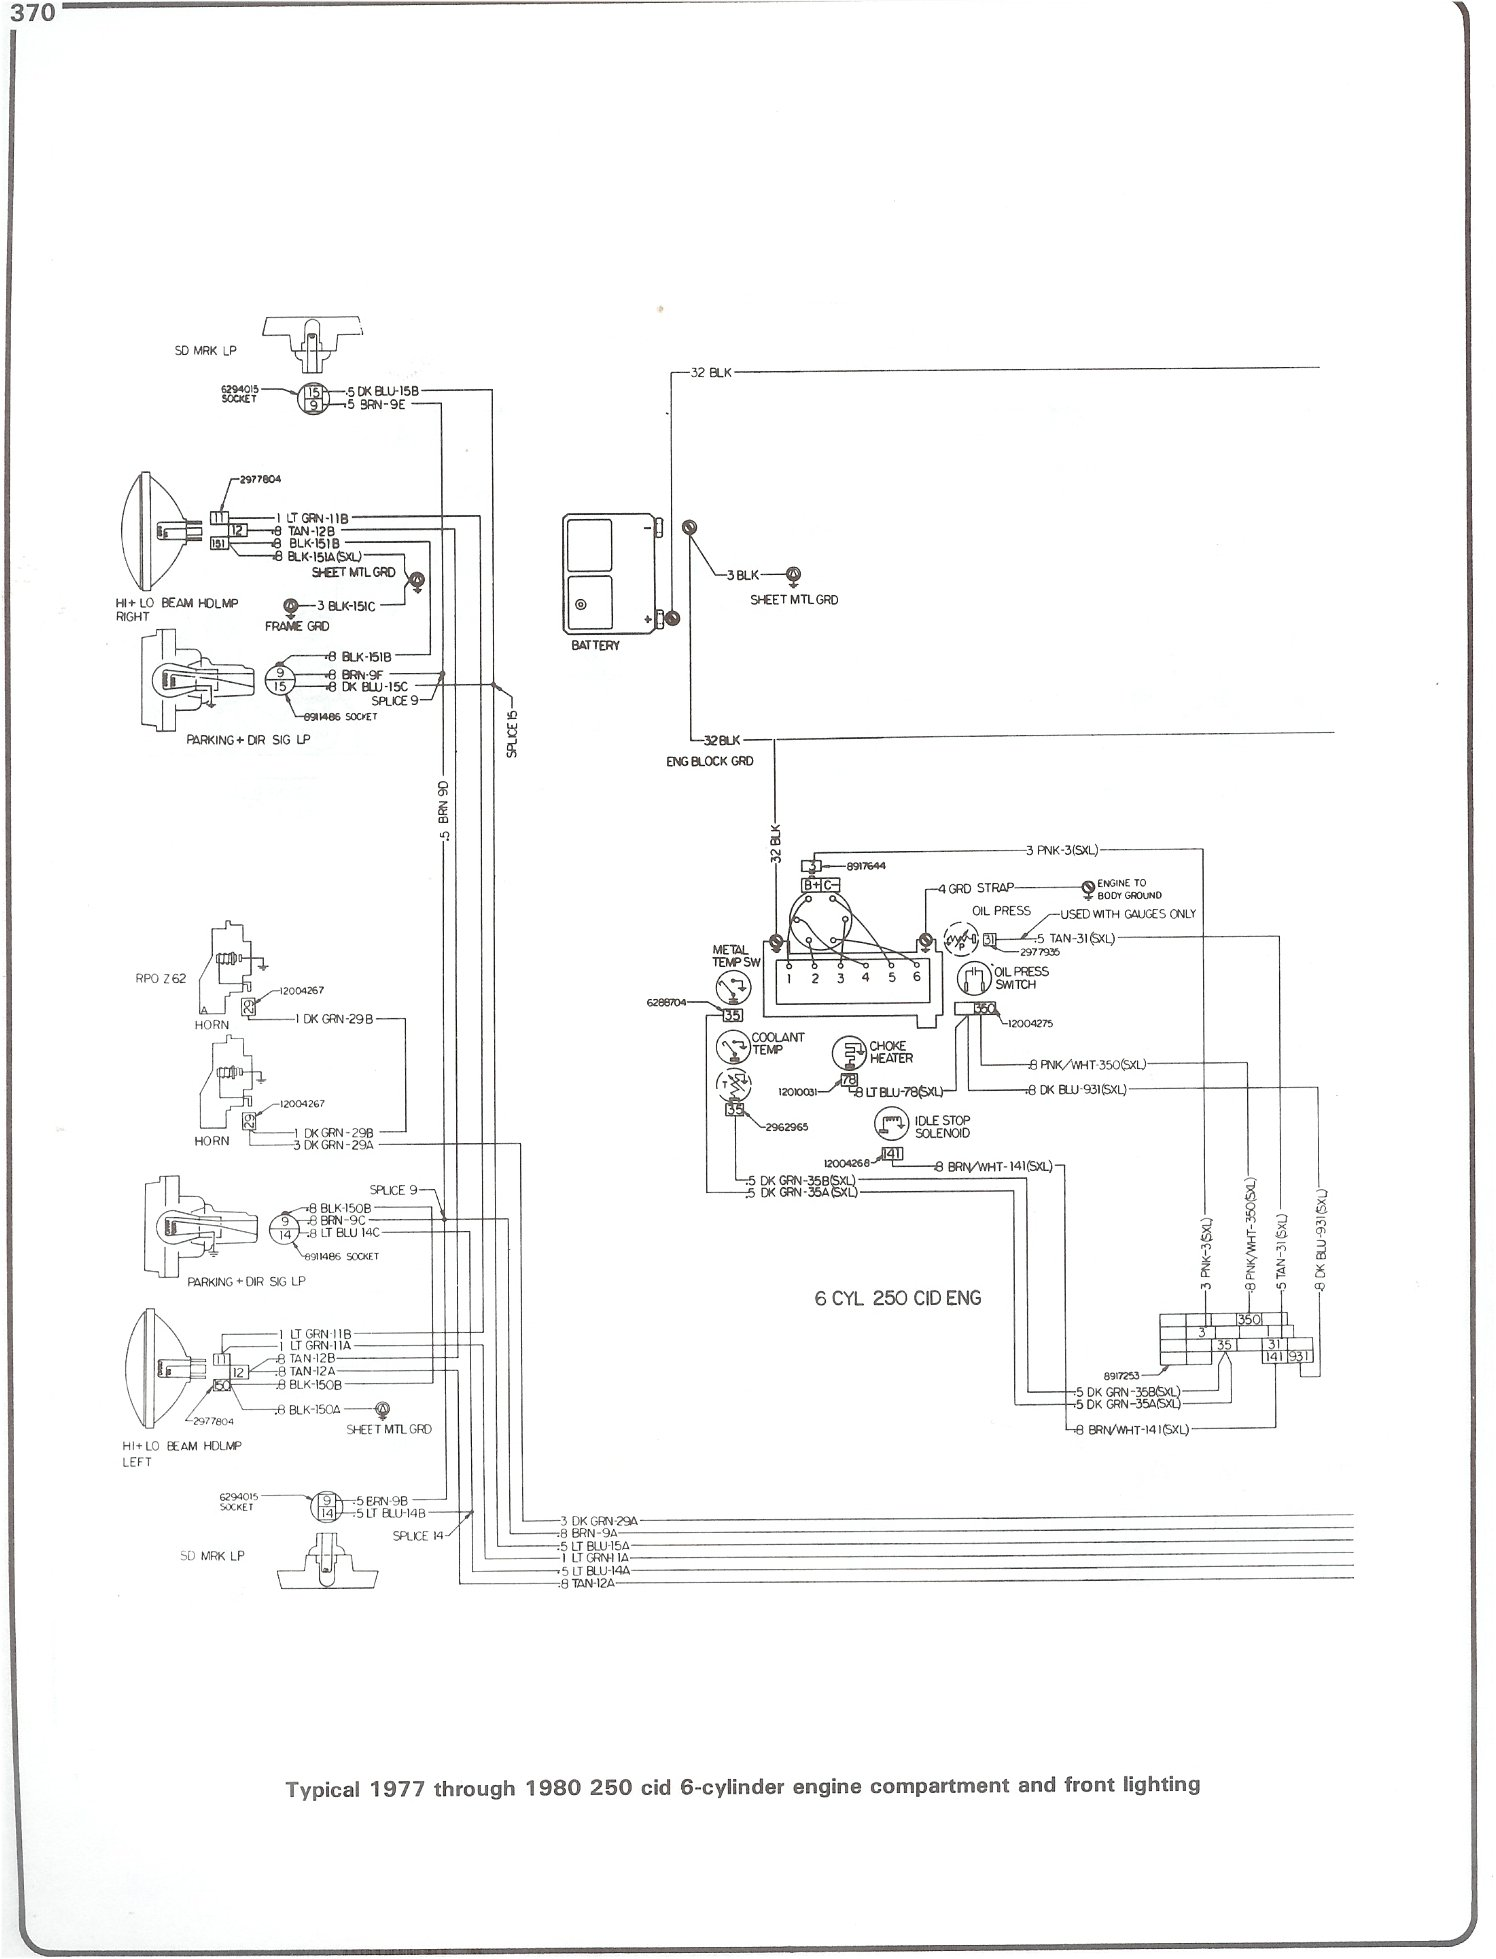 1982 P30 Wiring Diagram | Digital Resources Porsche Wiper Motor Wiring Diagram on